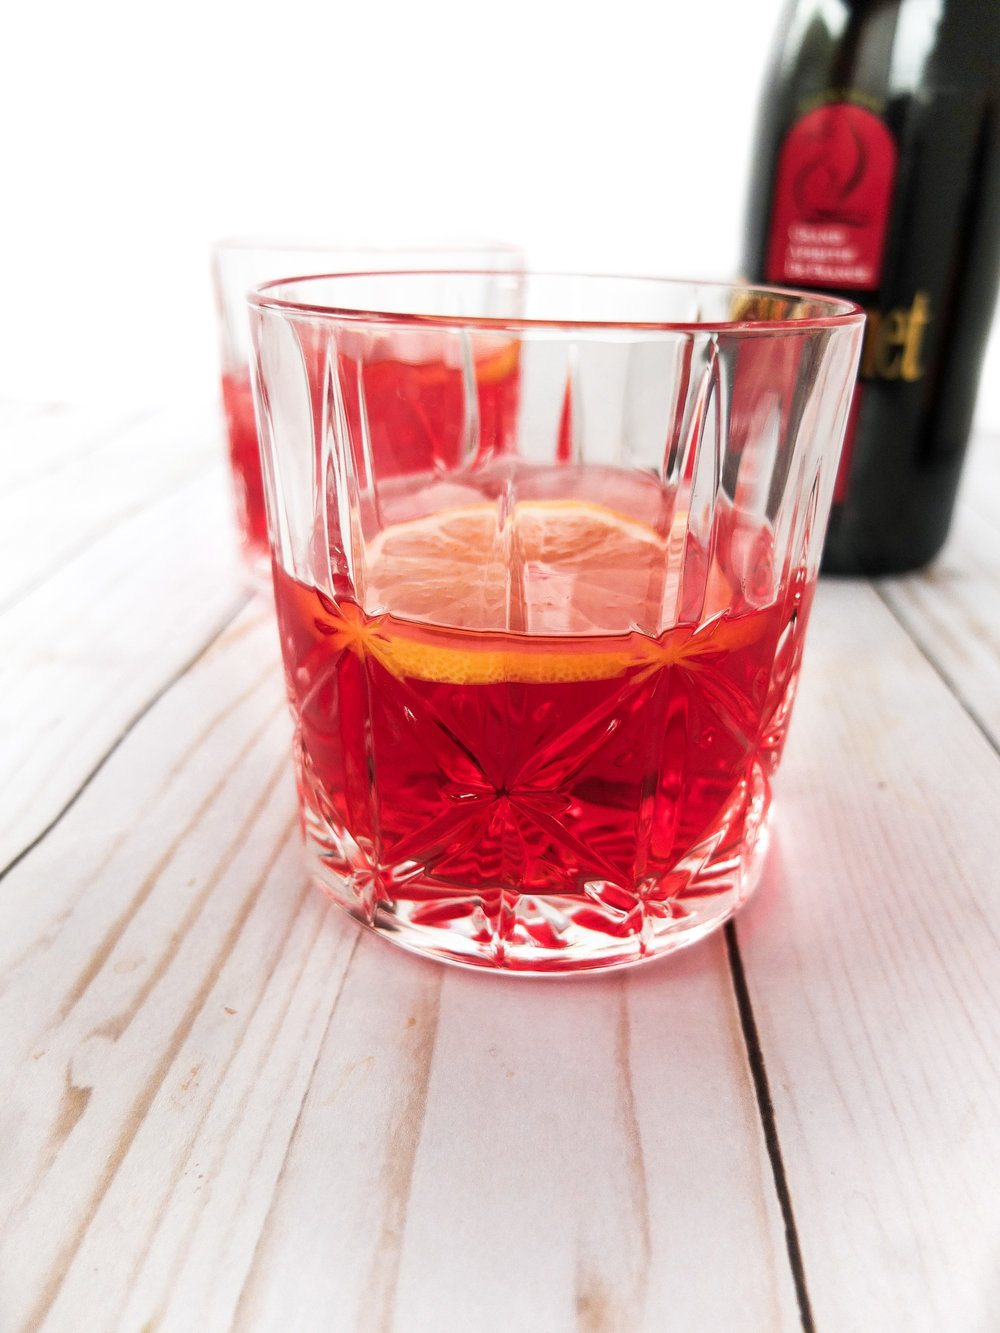 A cocktail perfect for The Crown viewing party. It is said that The Queen of England's favorite cocktail is a Dubonnet and Gin. It's an easy gin three ingredient cocktail of dubonnet, gin, and a lemon wedge. A delicious pre-dinner aperitif or just for sipping. Queen Elizabeth II's Dubonnet and Gin. www.elletalk.com // #TheCrown #Cocktail #CocktailRecipe #WatchParty #QueenElizabeth #QueenofEngland #HRM